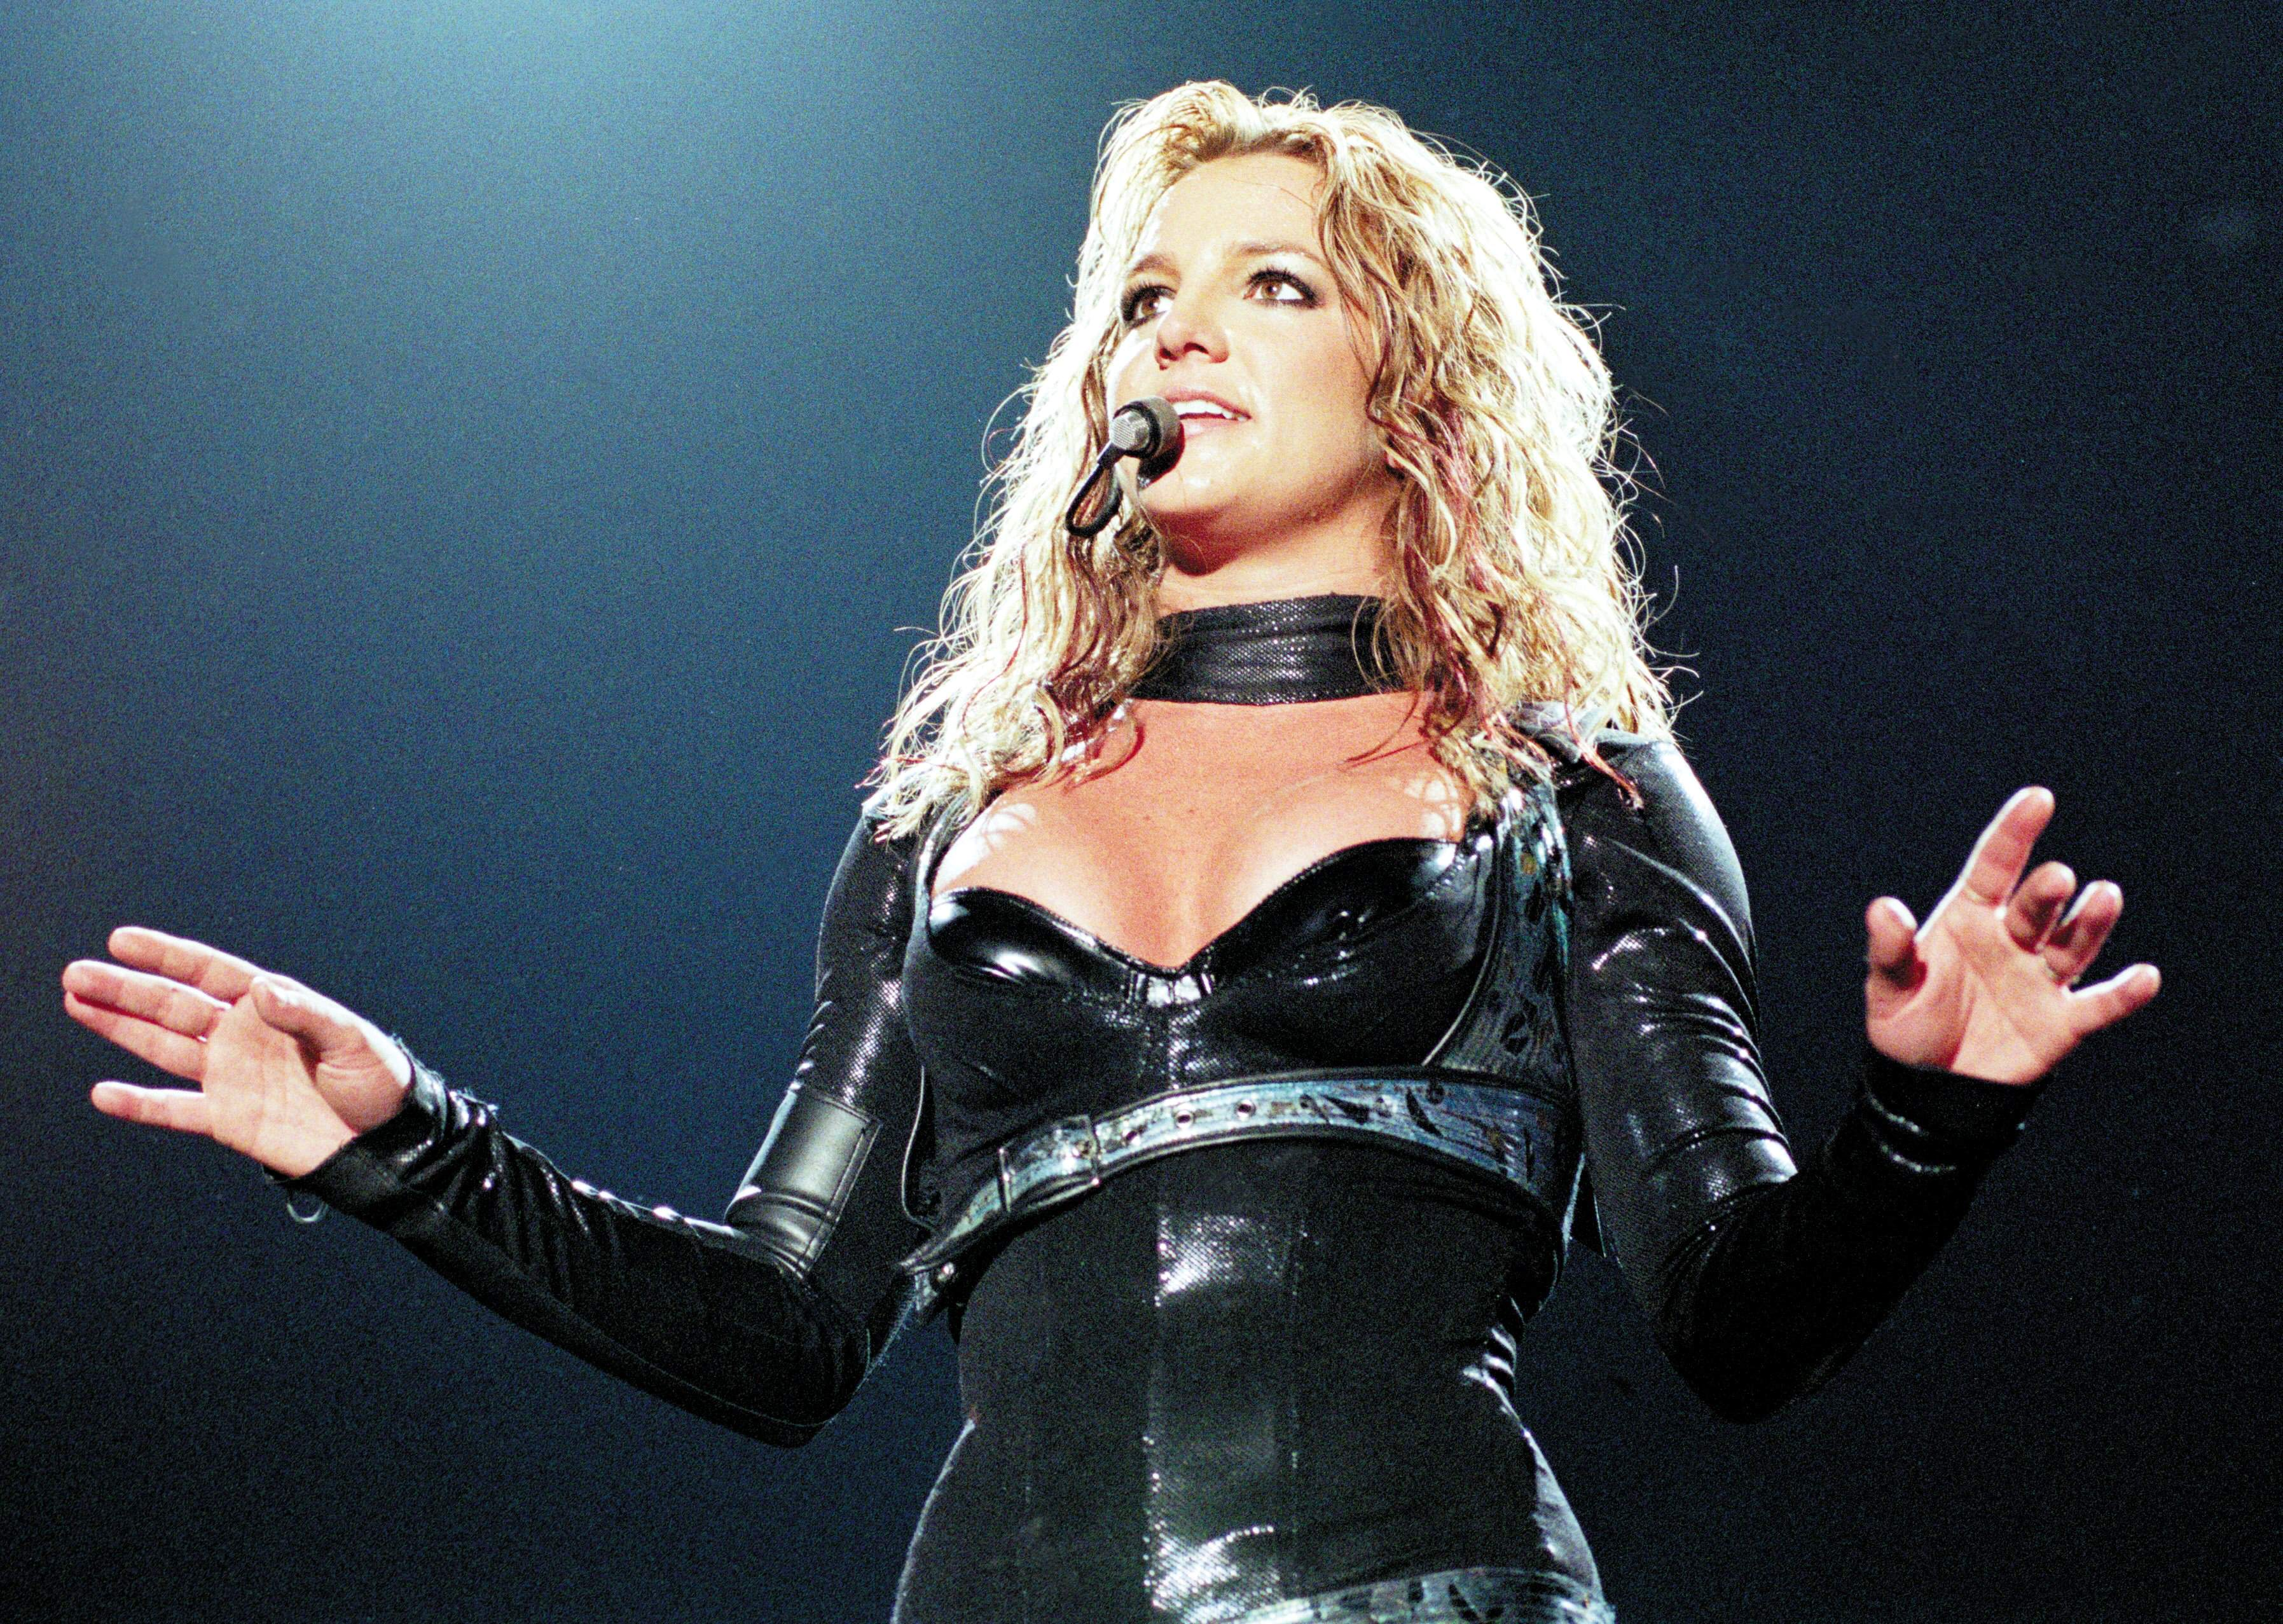 NETHERLANDS - MAY 07:  ROTTERDAM  Photo of Britney SPEARS, 07-05-2004/BRITNEY SPEARS/AHOY/ROTTERDAM  (Photo by Peter Pakvis/R